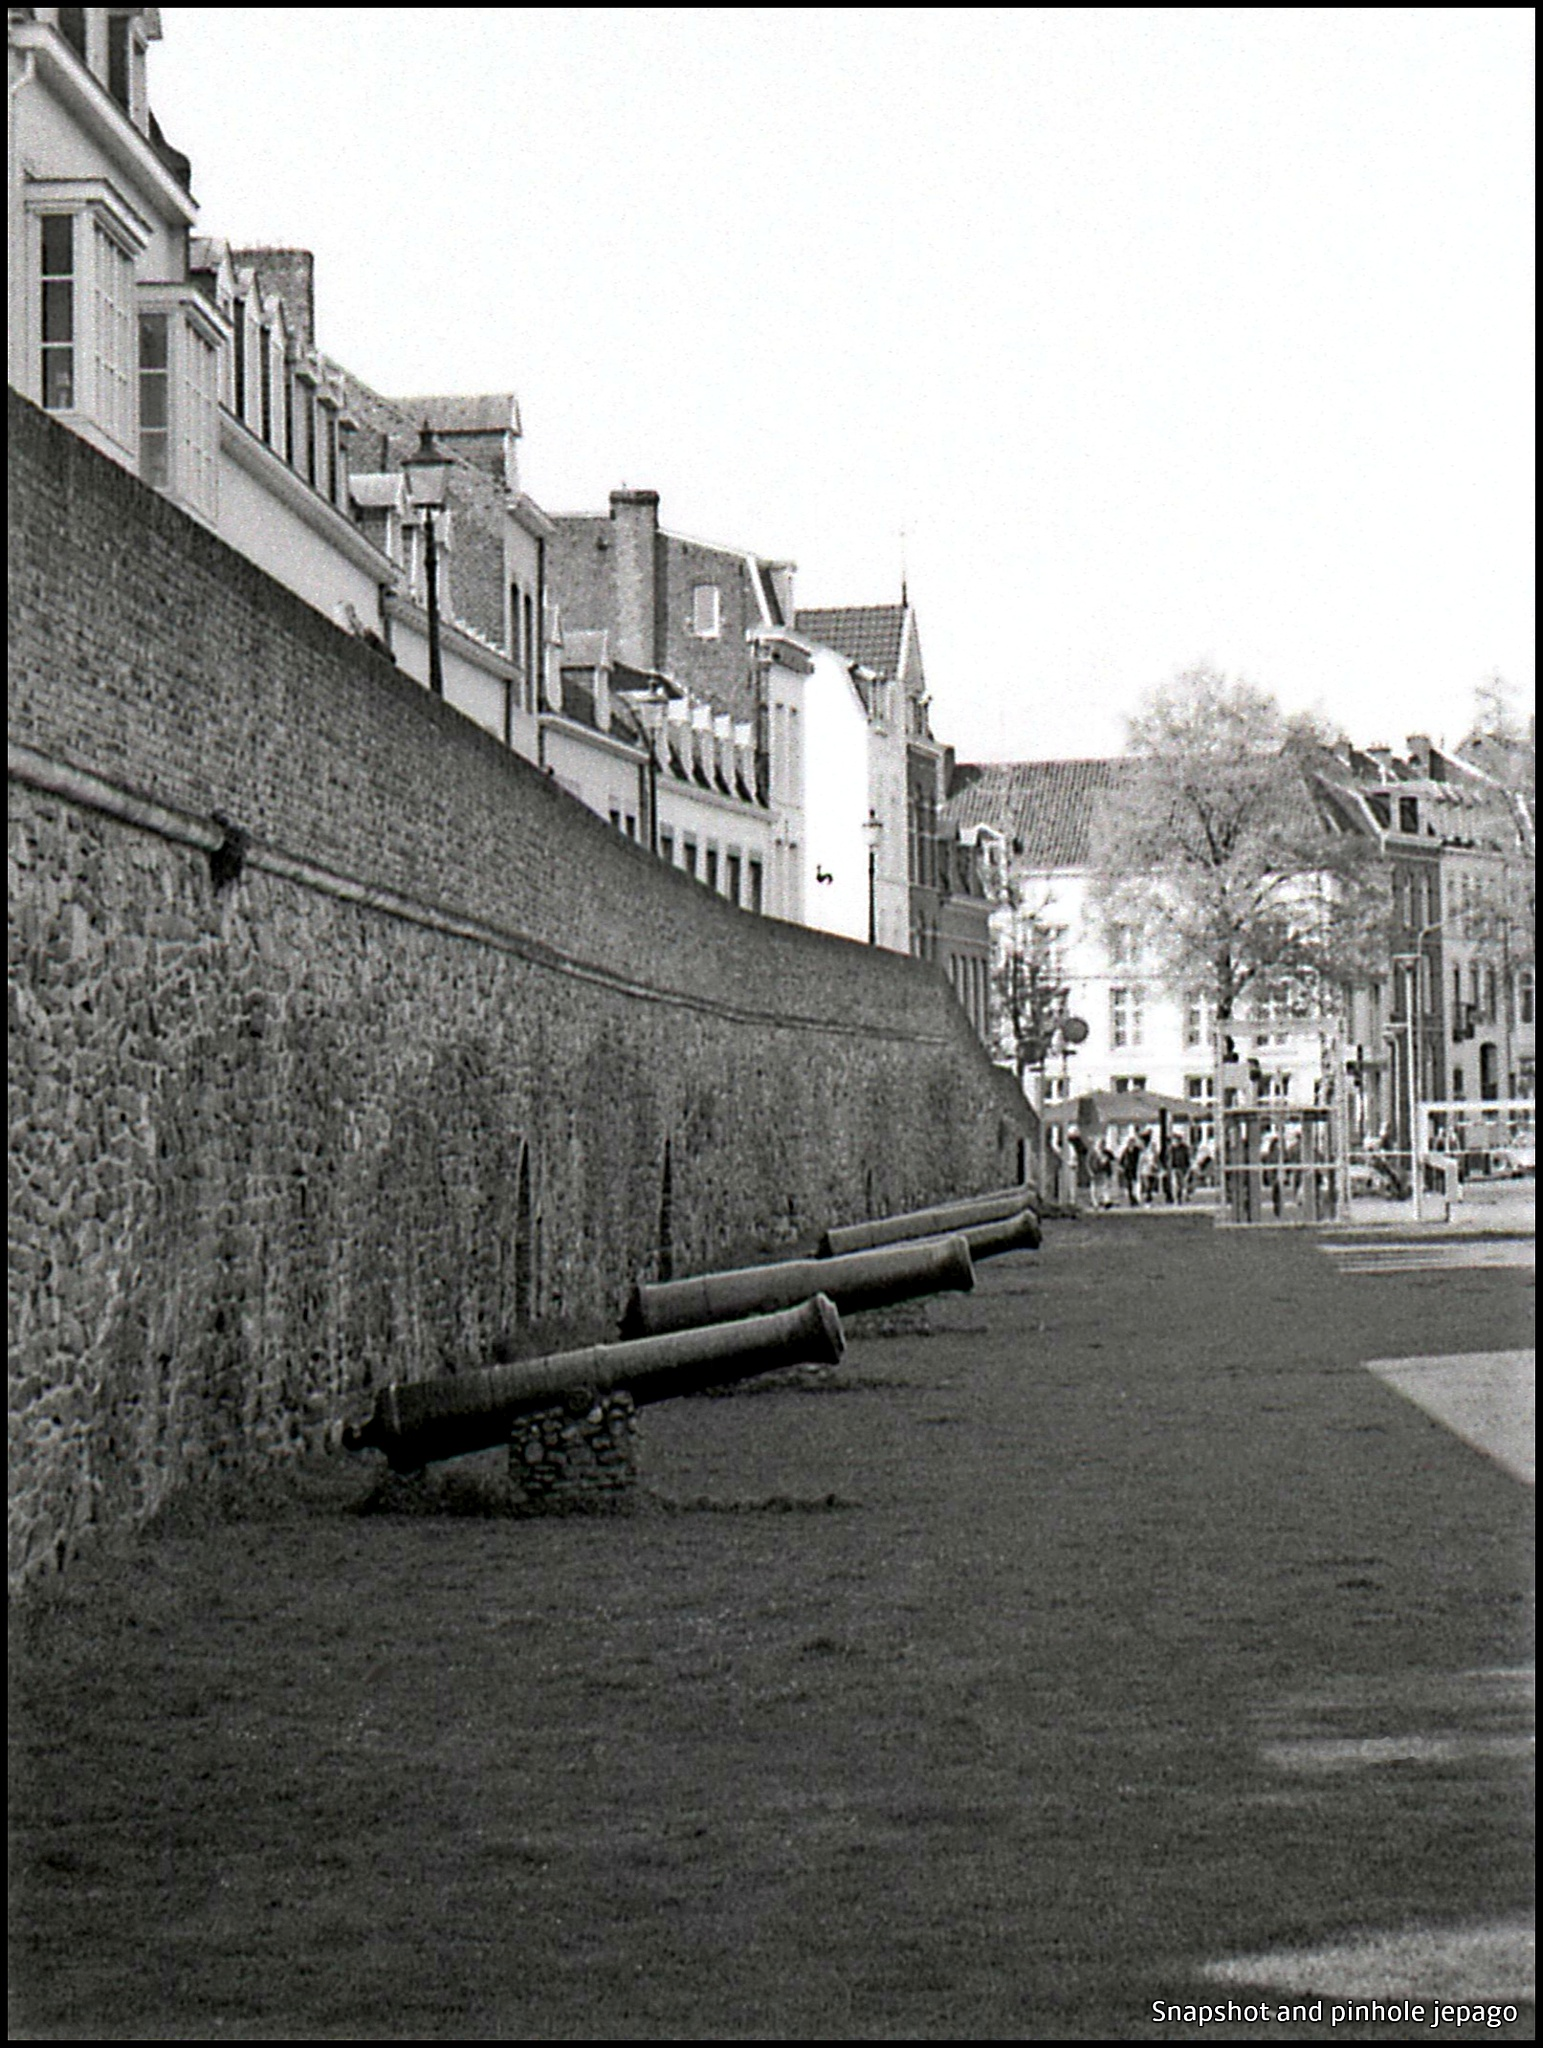 City walls of Maastricht in the Netherlands by Jepago analogue photography